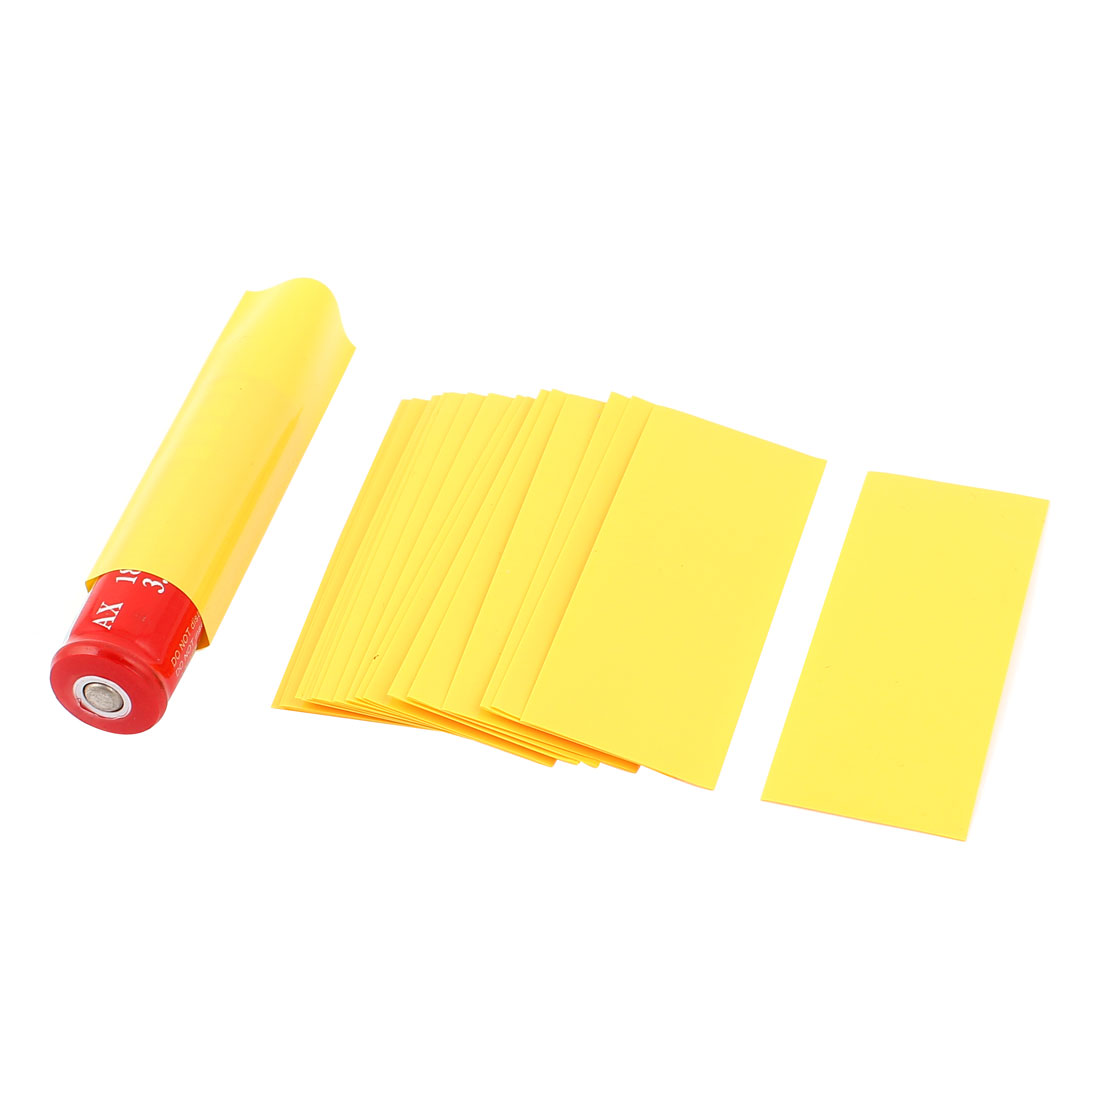 20pcs 18.5mm Dia PVC Heat Shrink Tubing Yellow for 1 x 18650 Battery